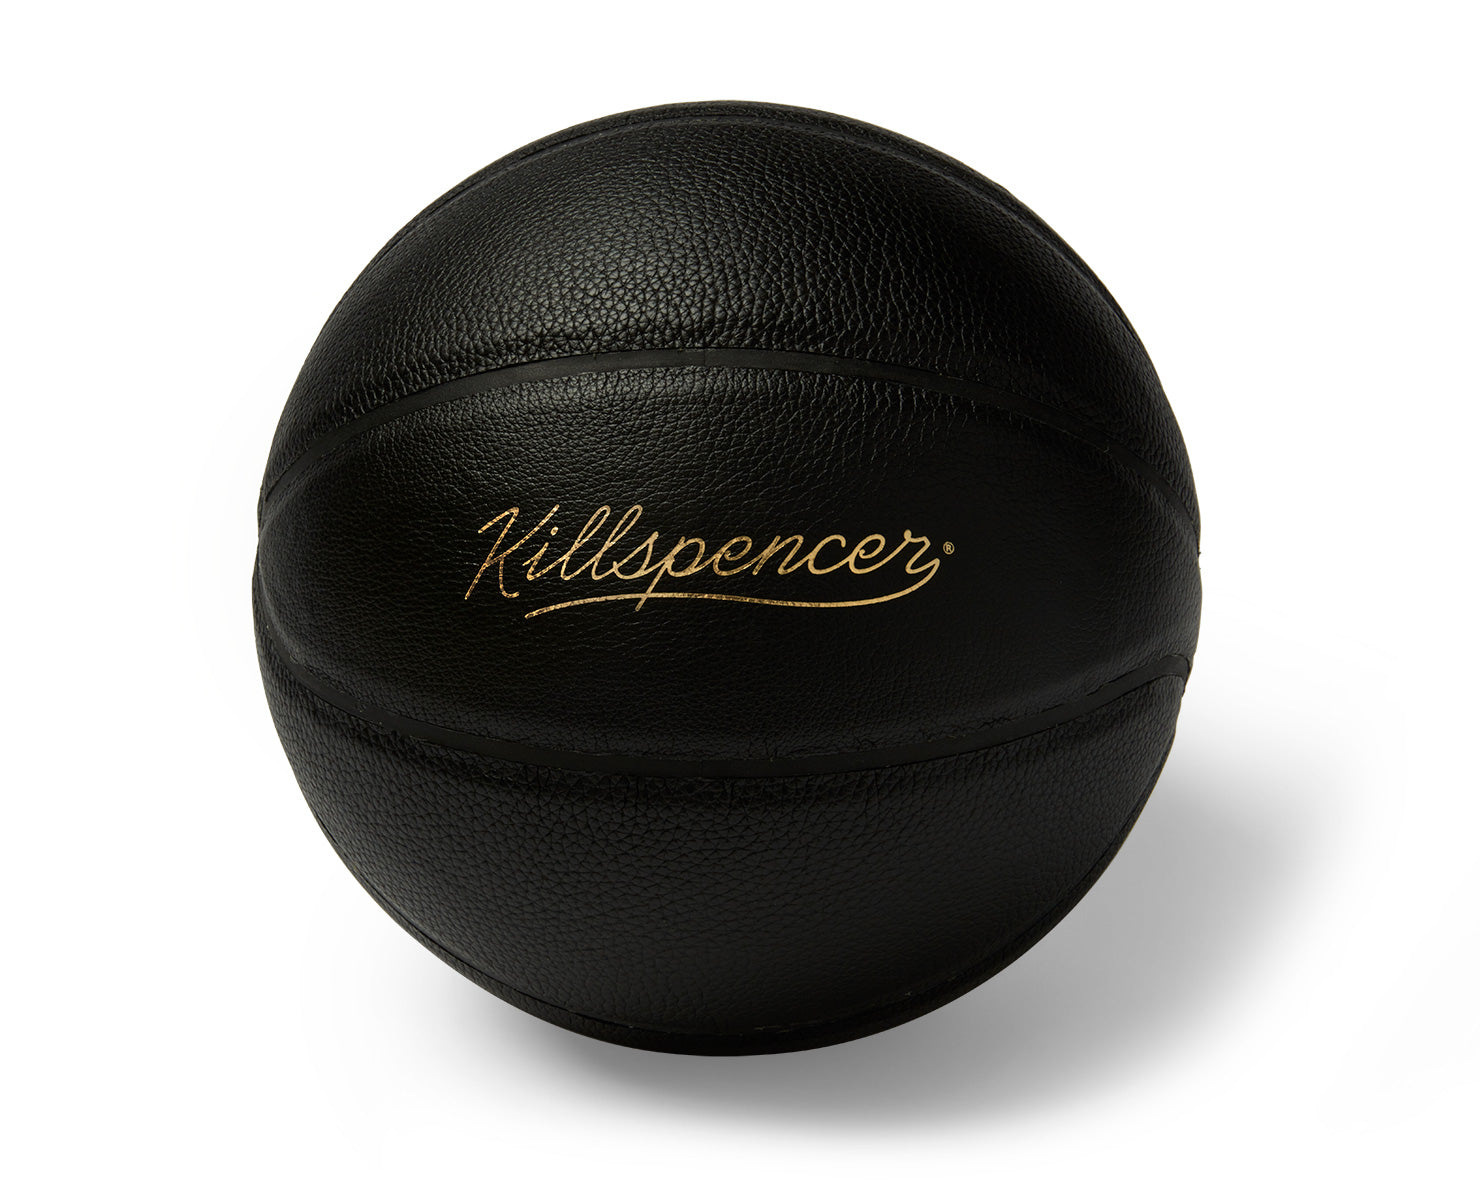 INDOOR FULL-SIZE BASKETBALL | KILLSPENCER® - Black Leather with Black Grip